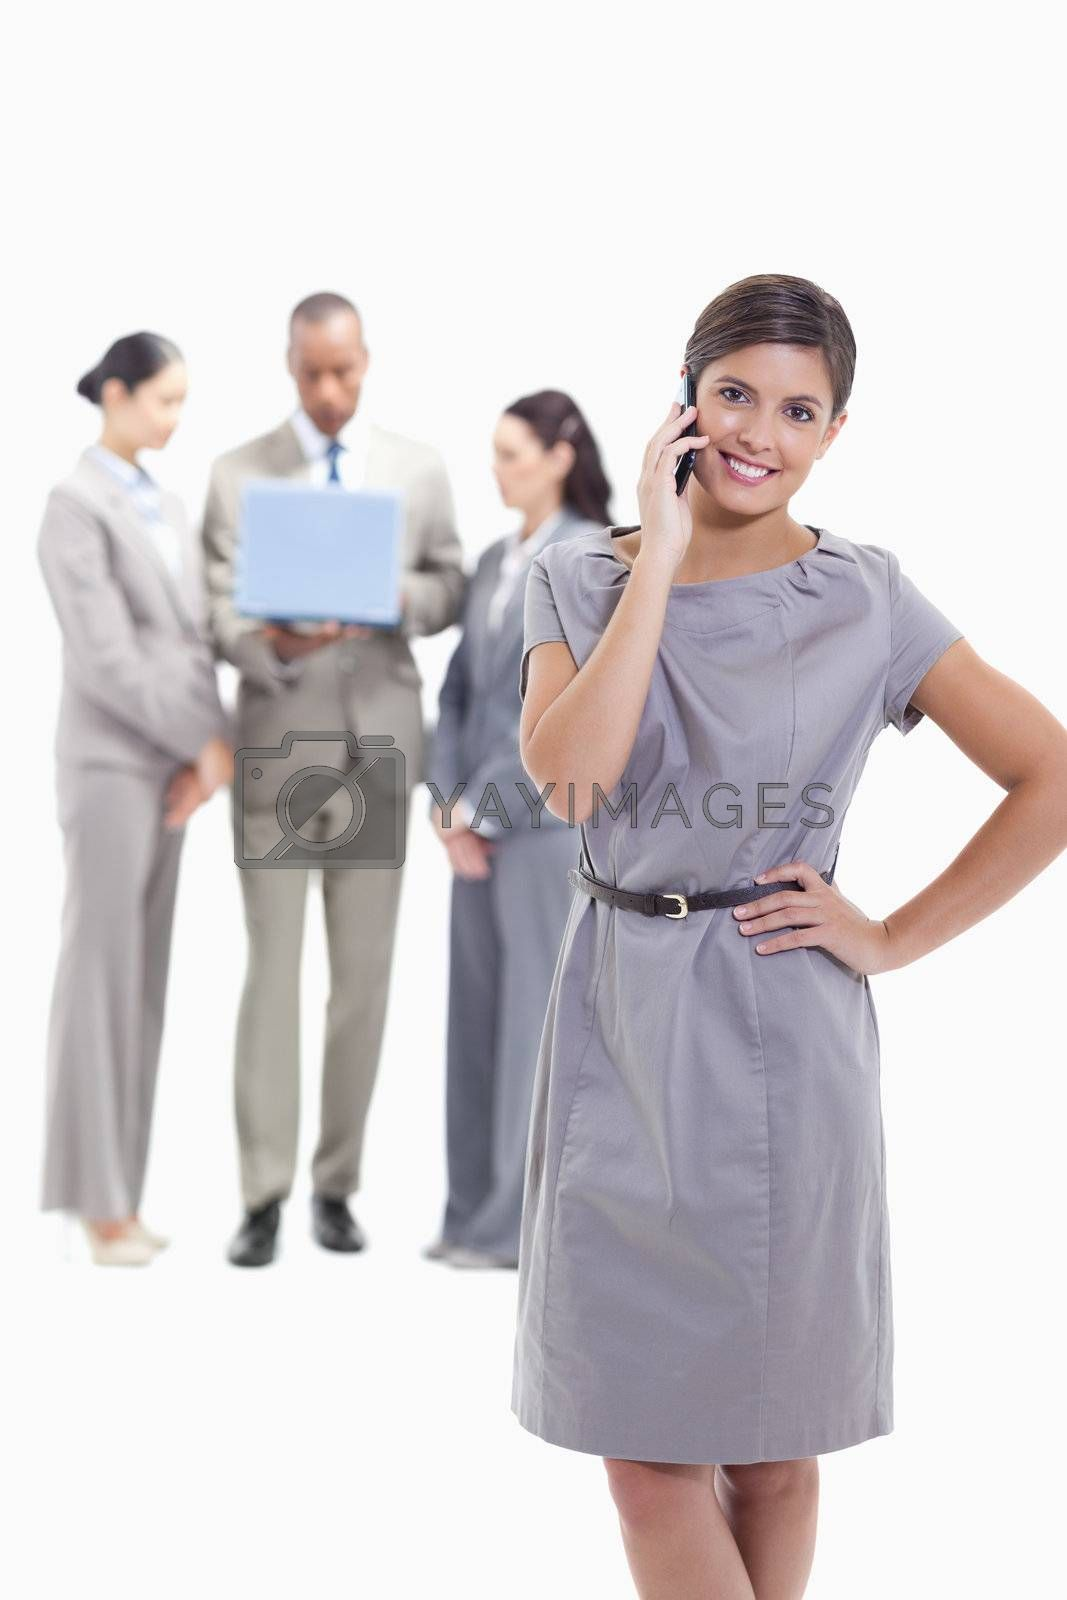 Businesswoman on the phone with a hand on her hip, her legs crossing and her head tilted with co-workers in the background watching a laptop screen